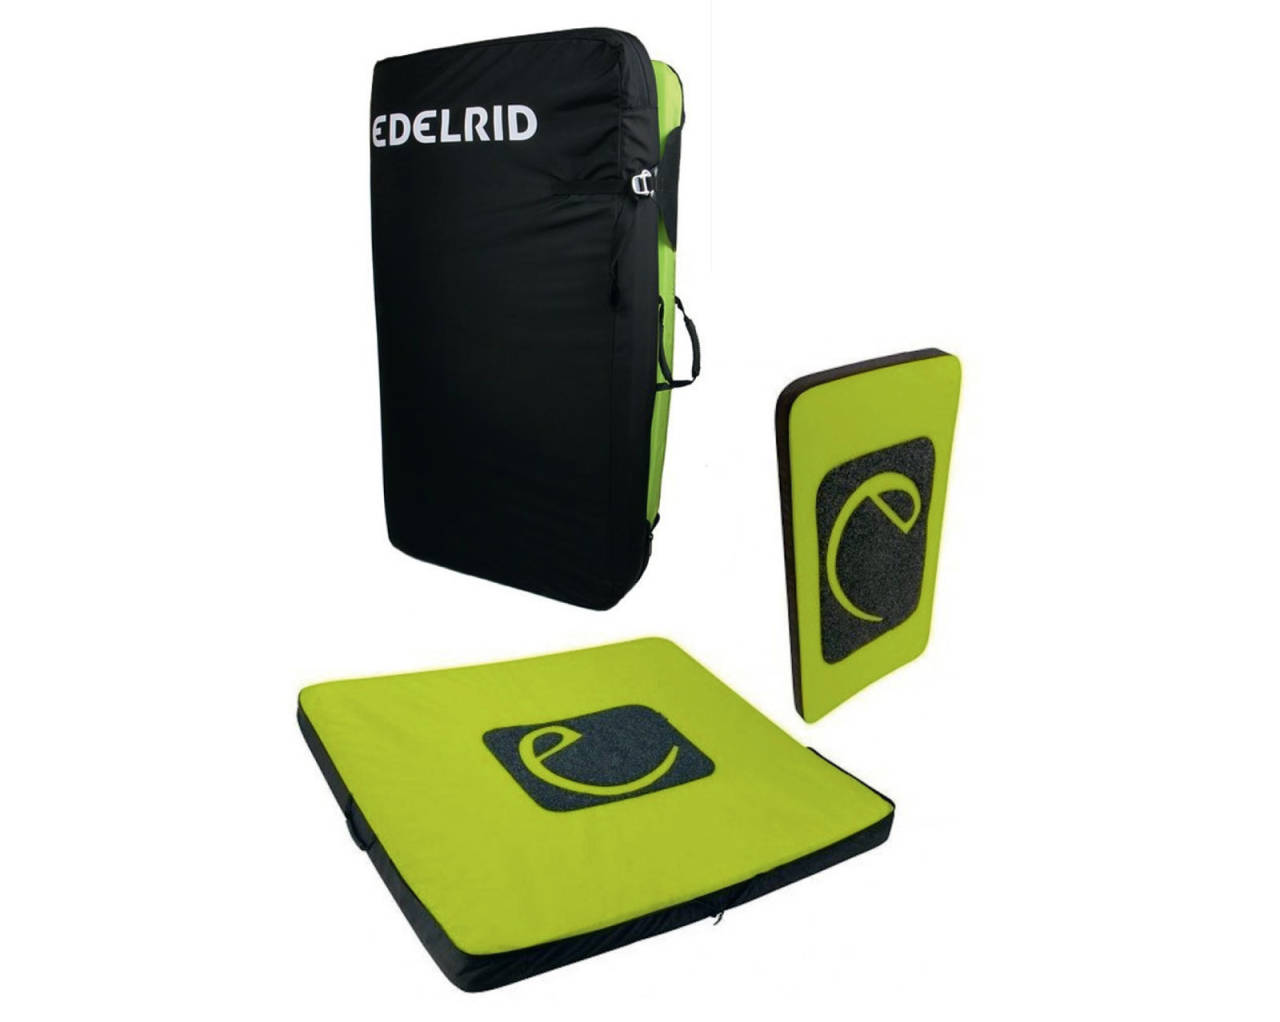 Edelrid Dead Point II